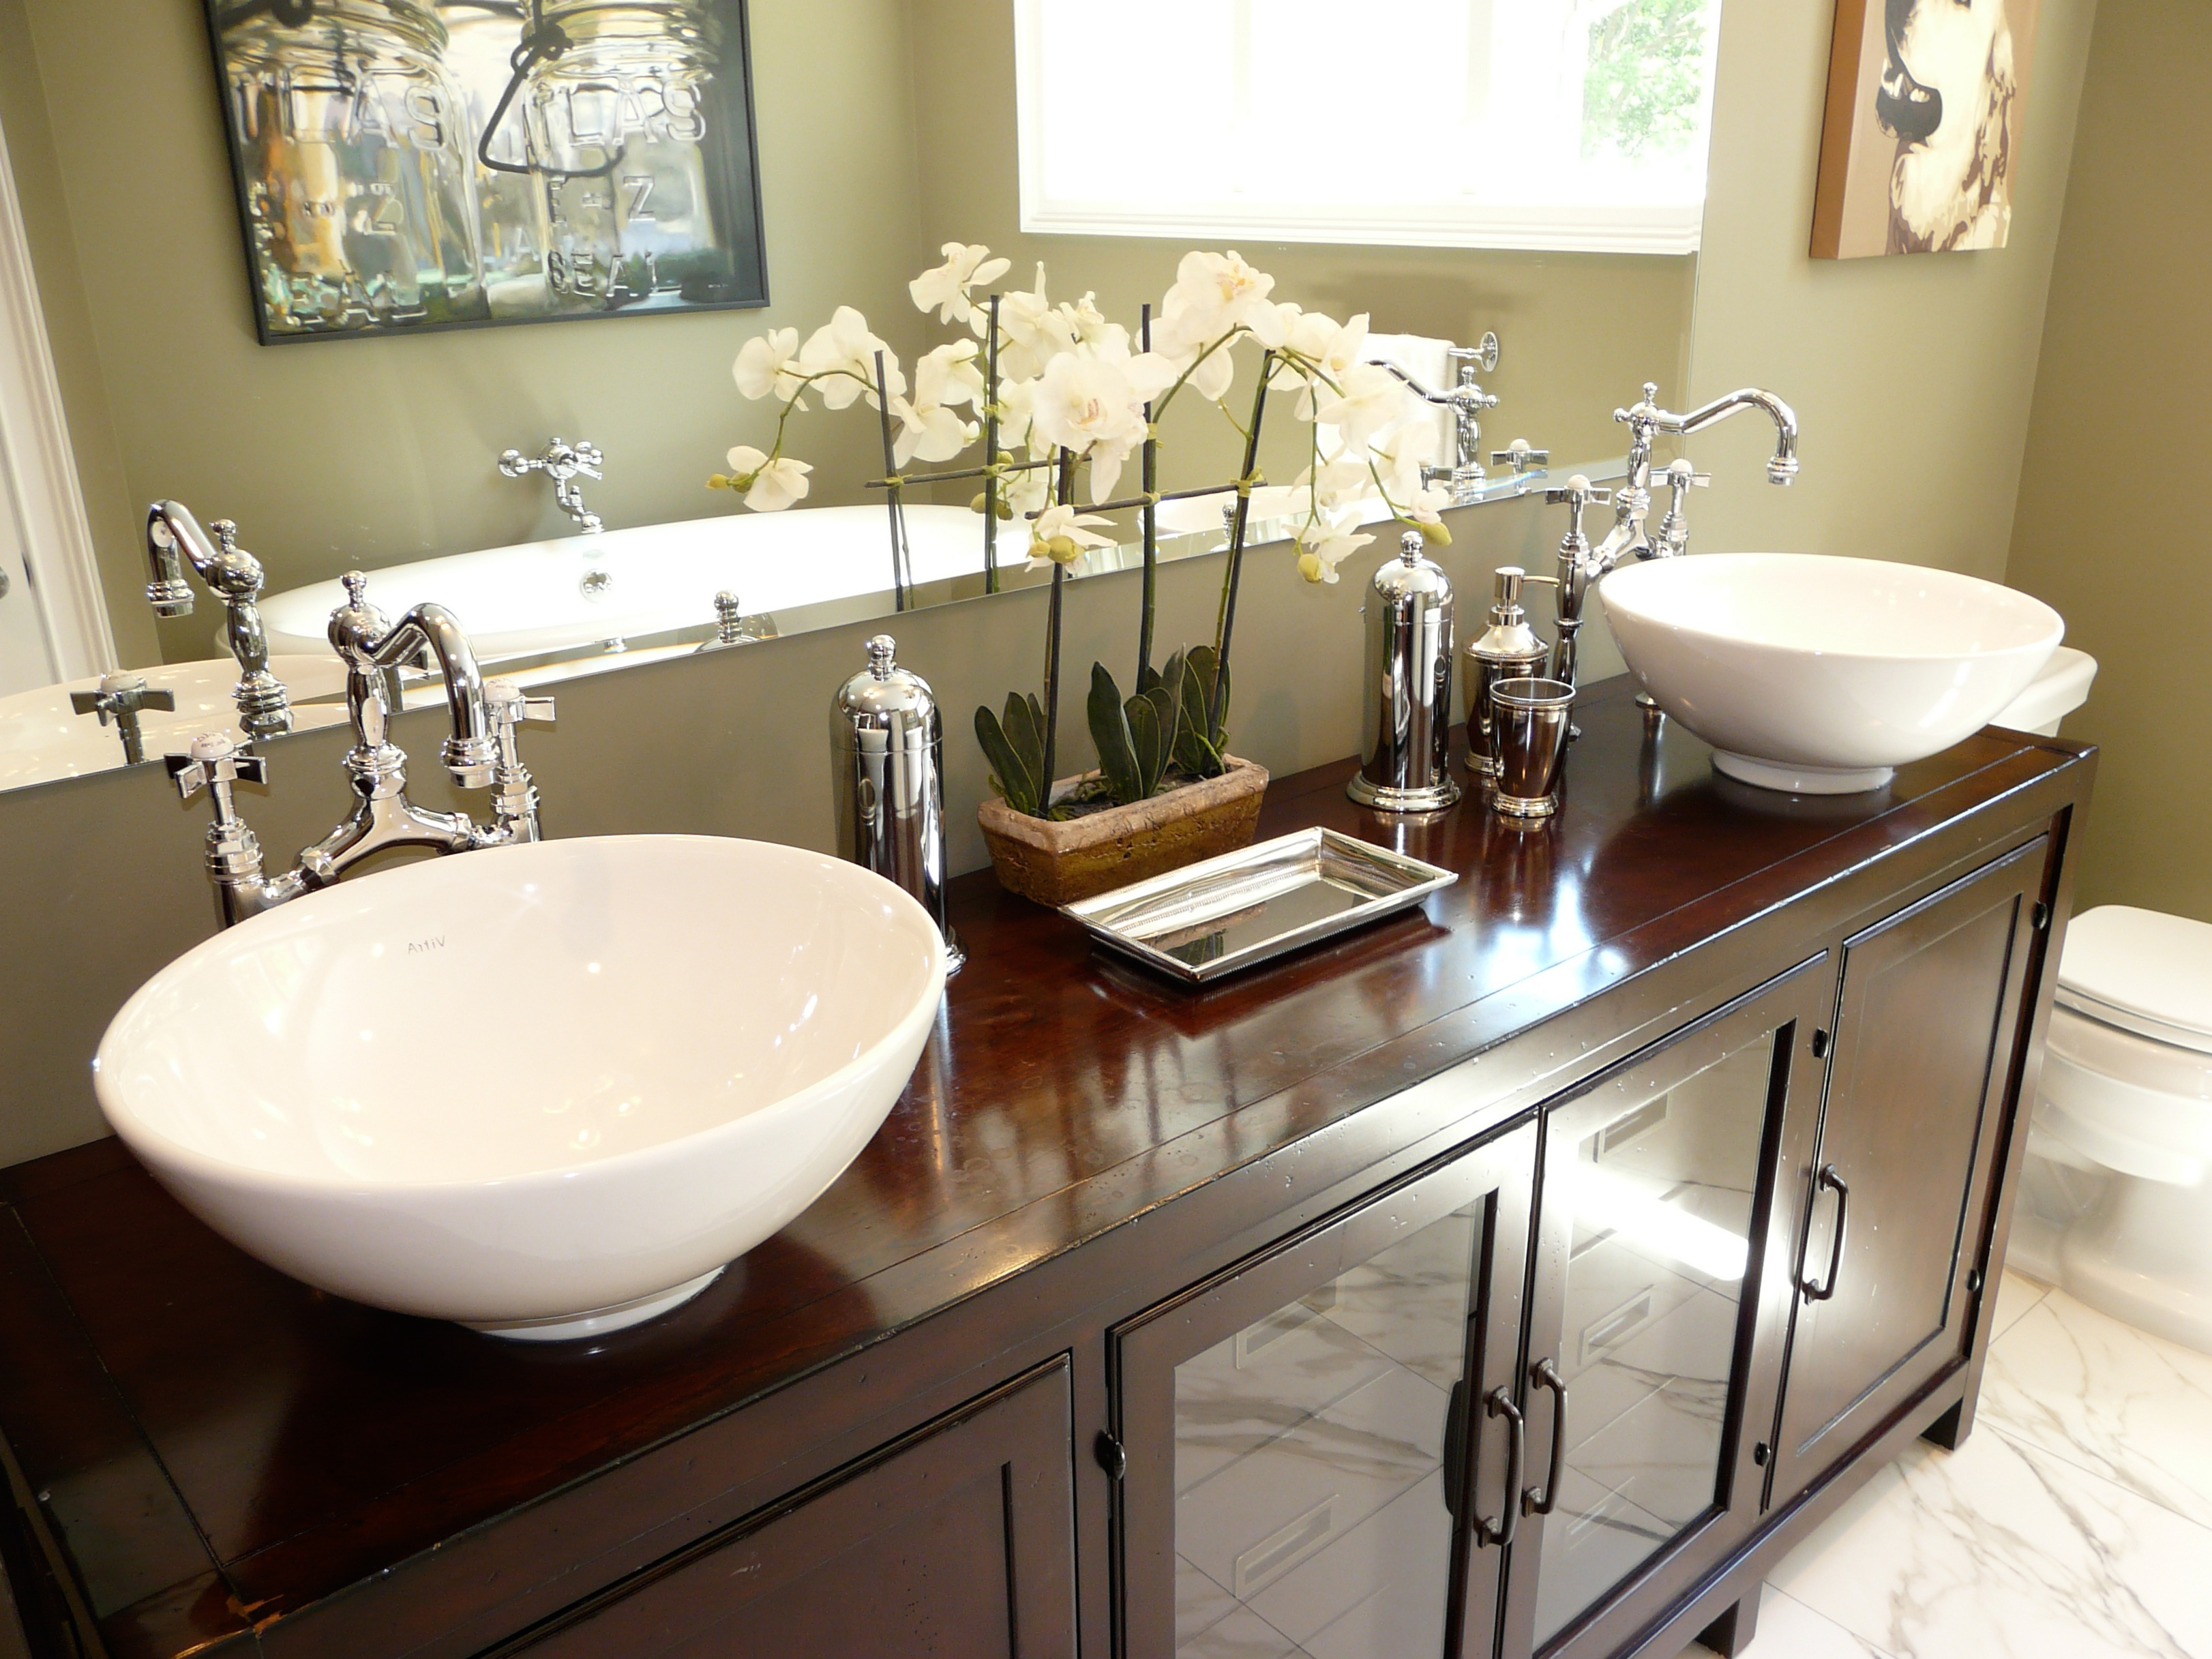 Modern Sophisticated Bathroom Accessories And Flowers Image 10 Of 14